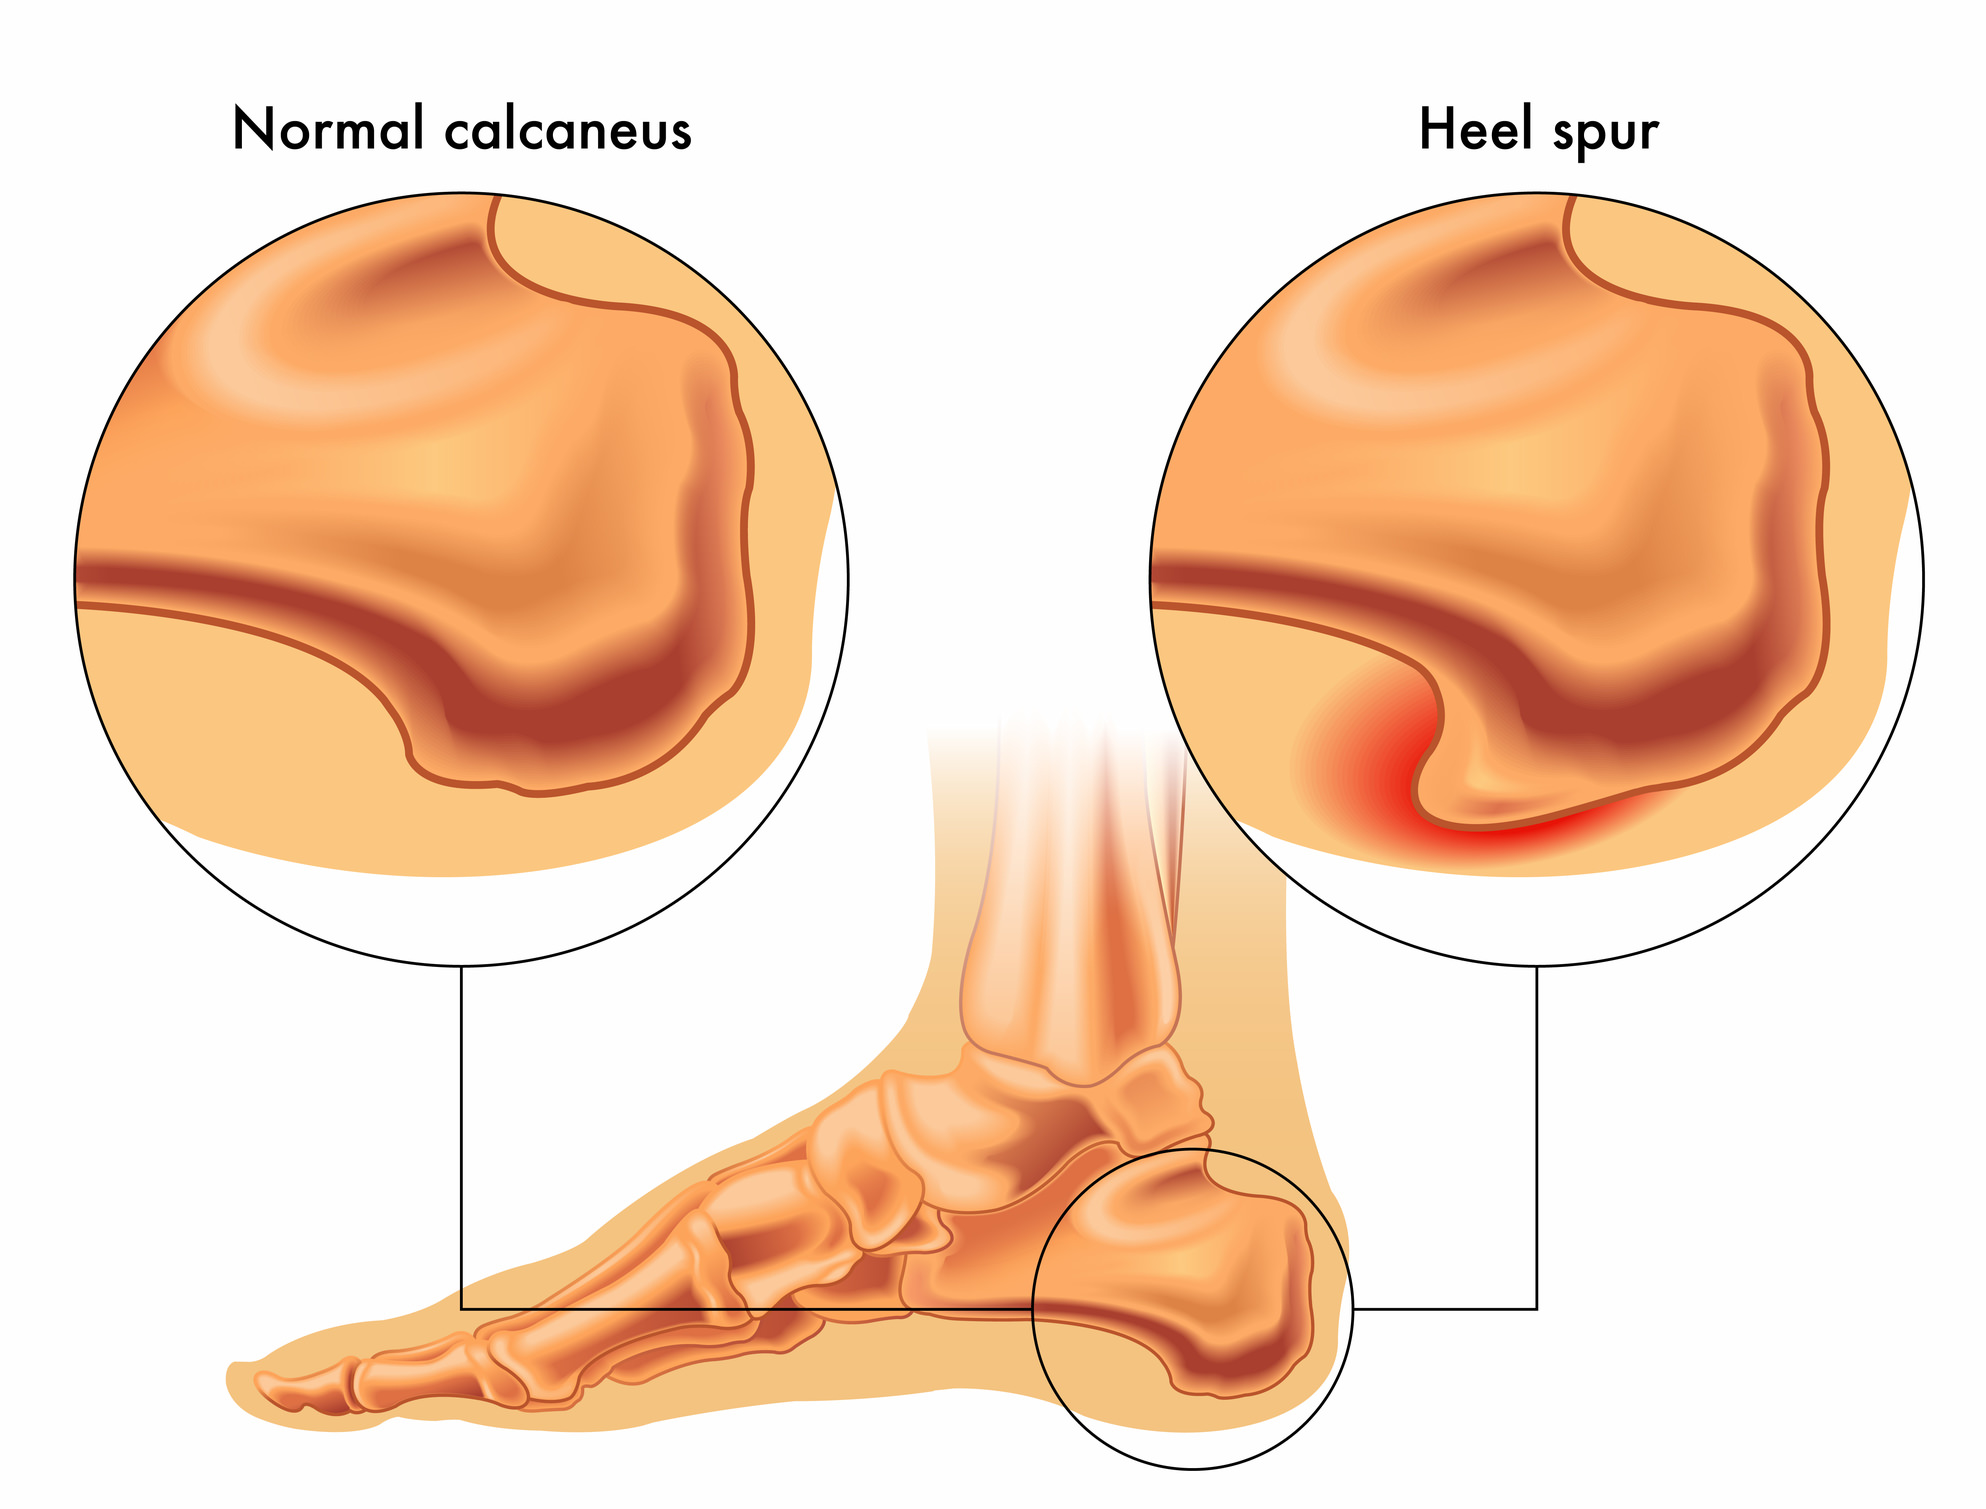 hight resolution of heel spurs diagram